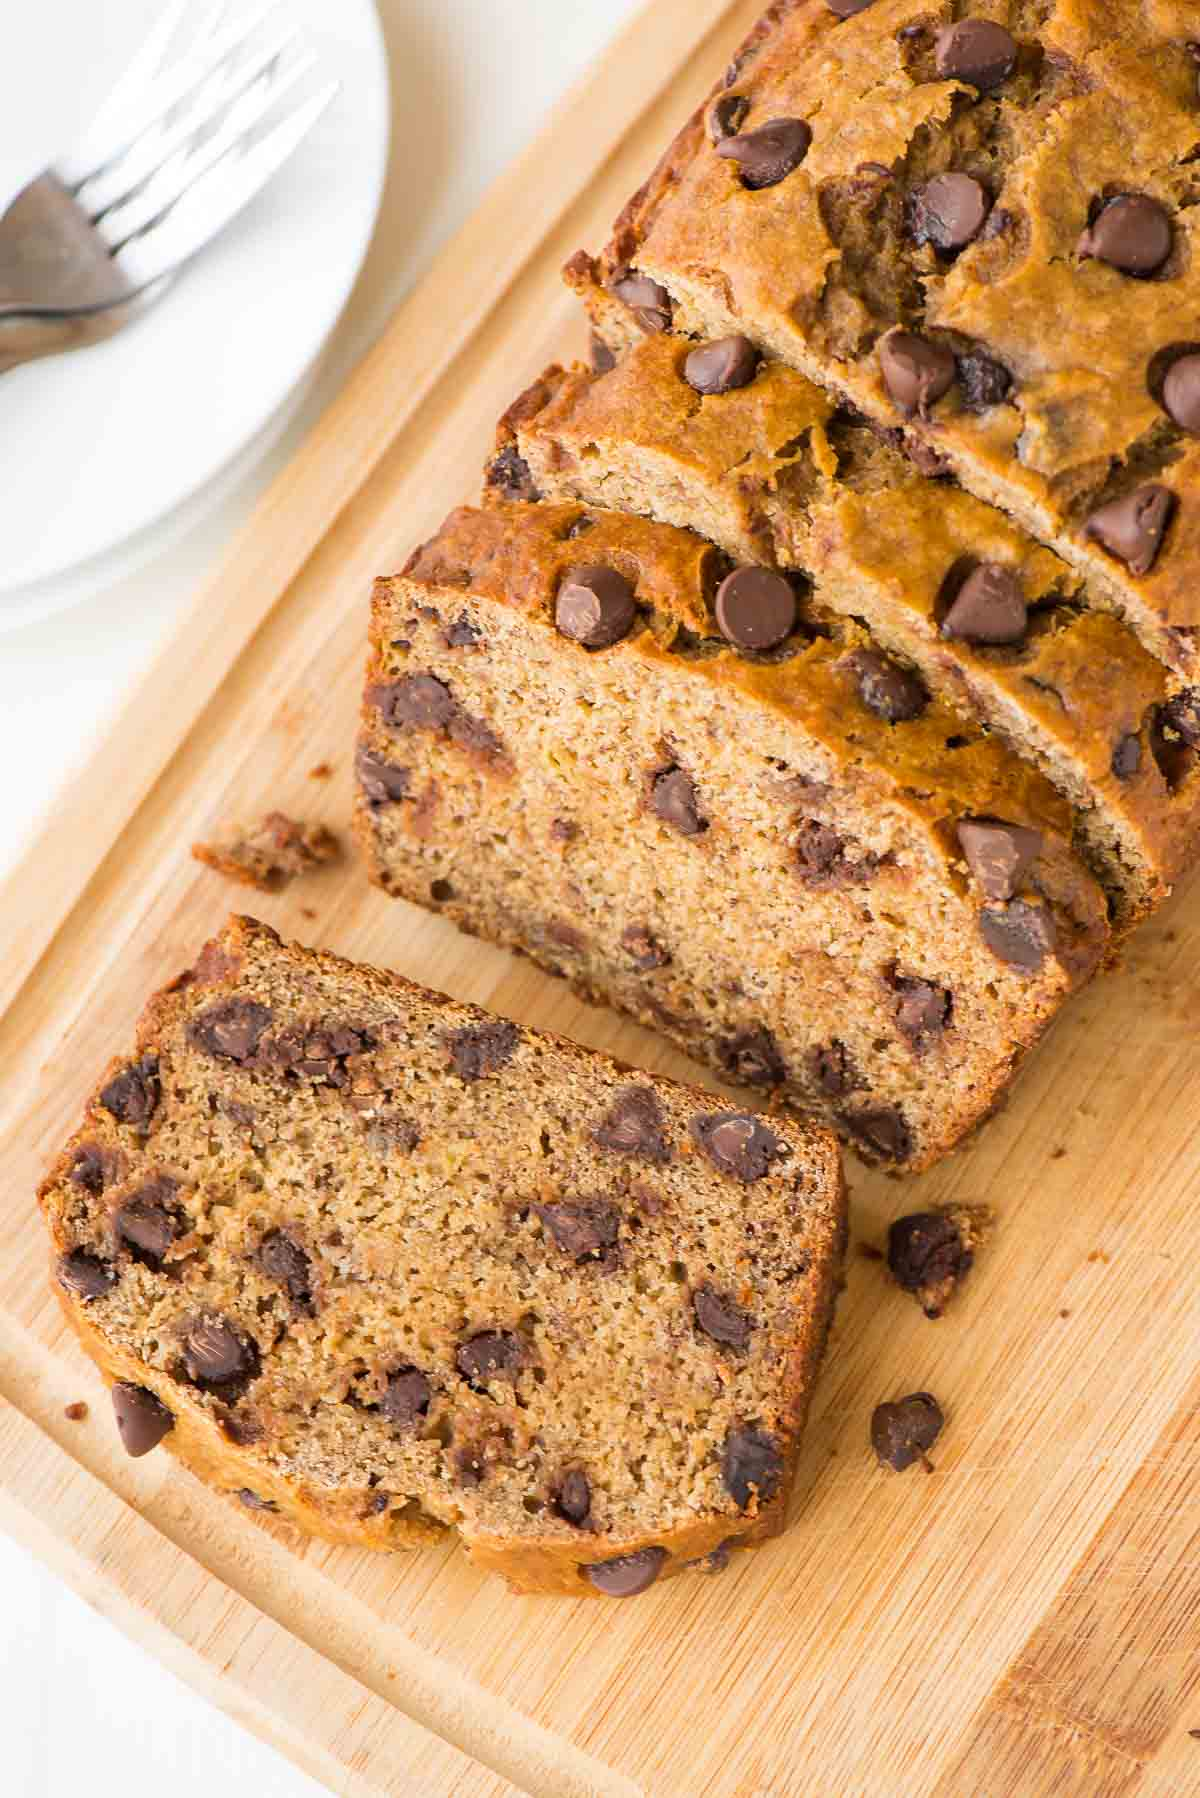 Healthy Banana Bread Recipe with Chocolate Chips | Well Plated by Erin